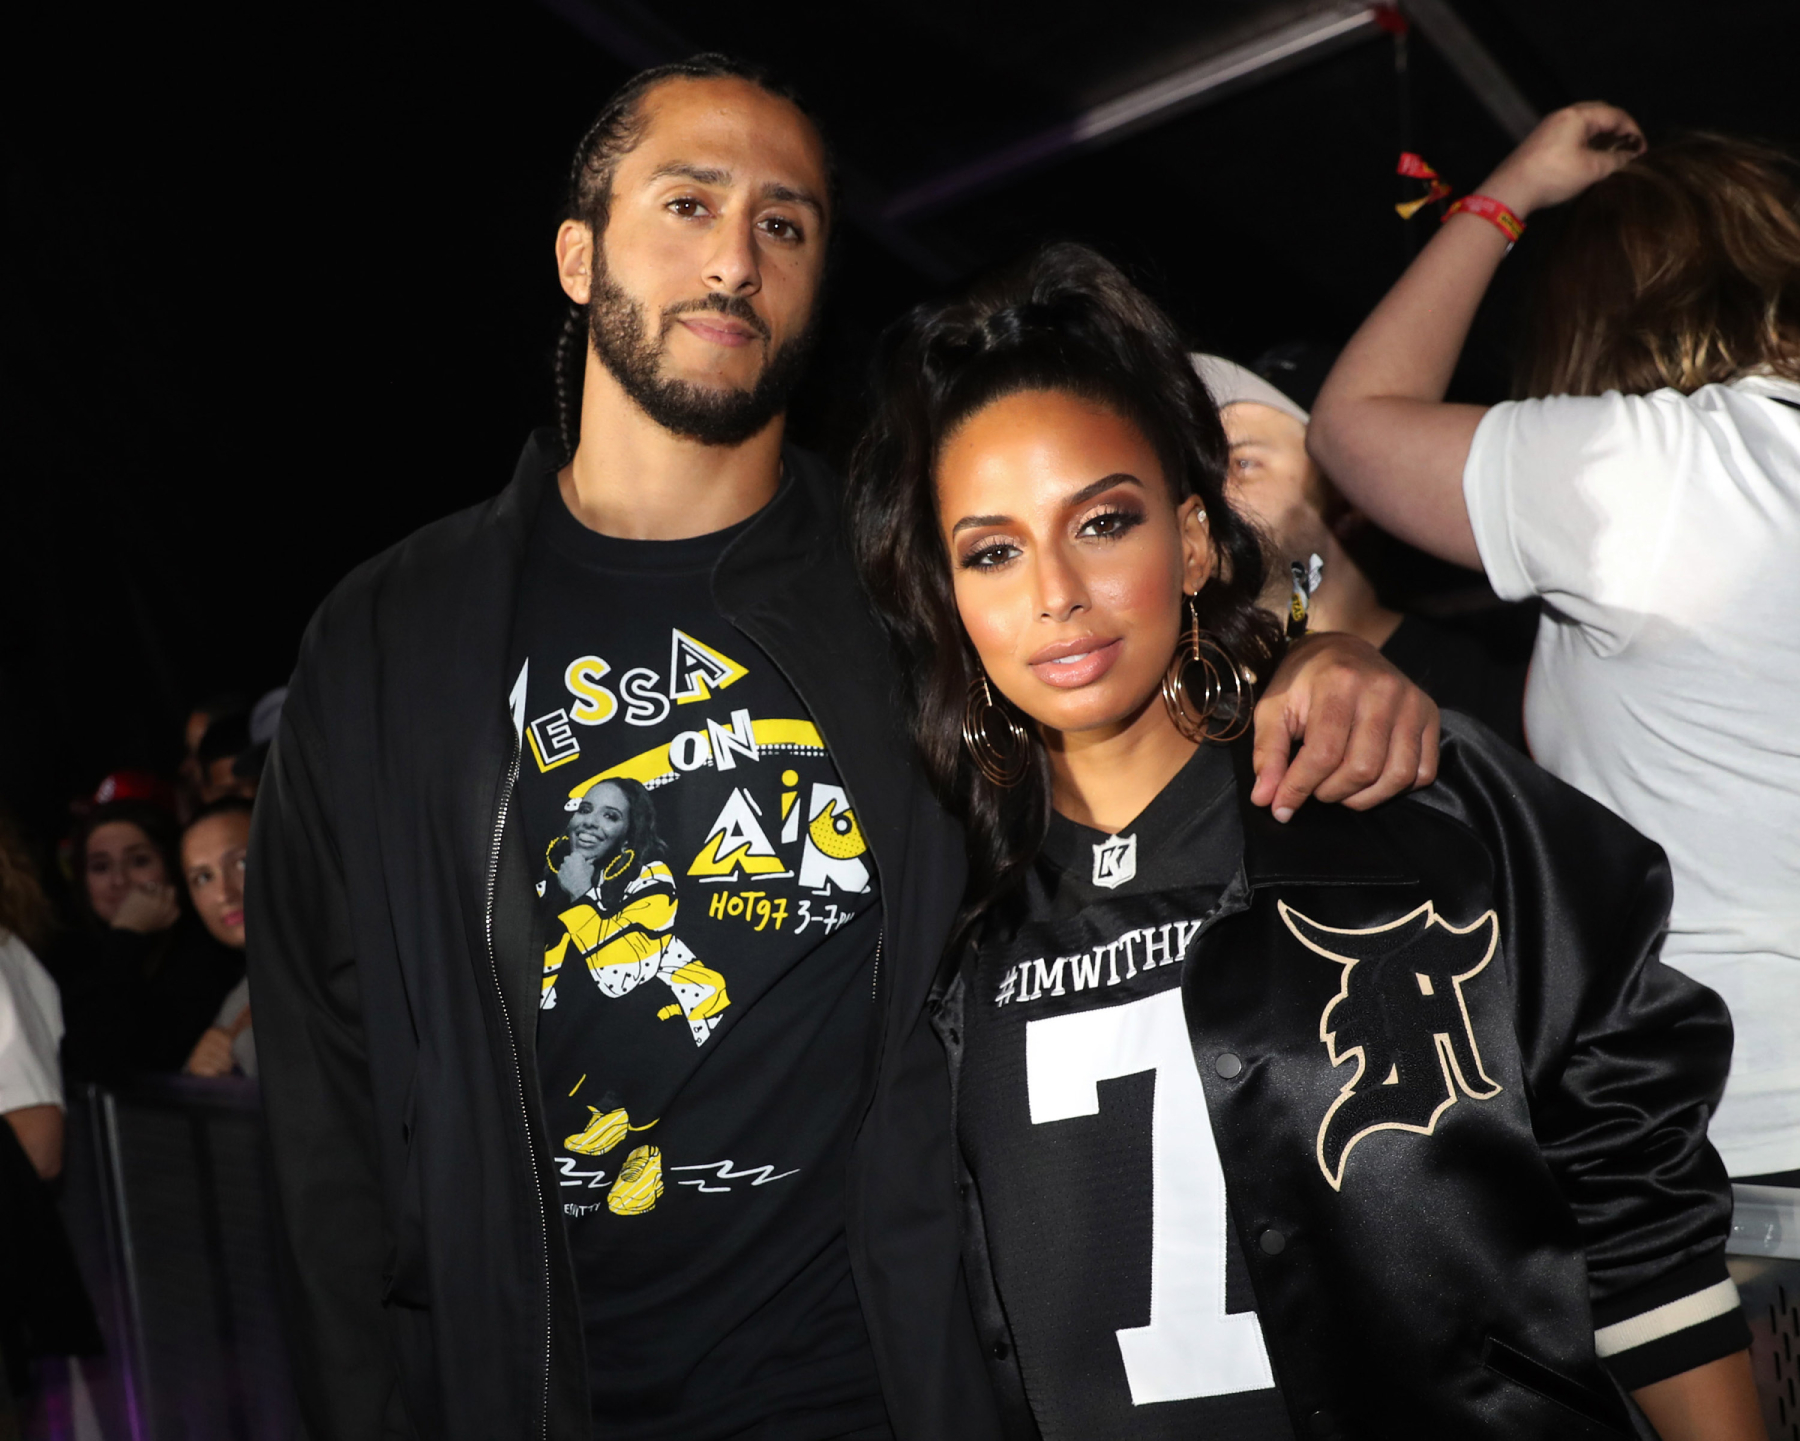 Colin Kaepernick and Eric Reid aren't in the NFL. However, Kaepernick, Reid, and Kaepernick's girlfriend Nessa won't stop fighting.